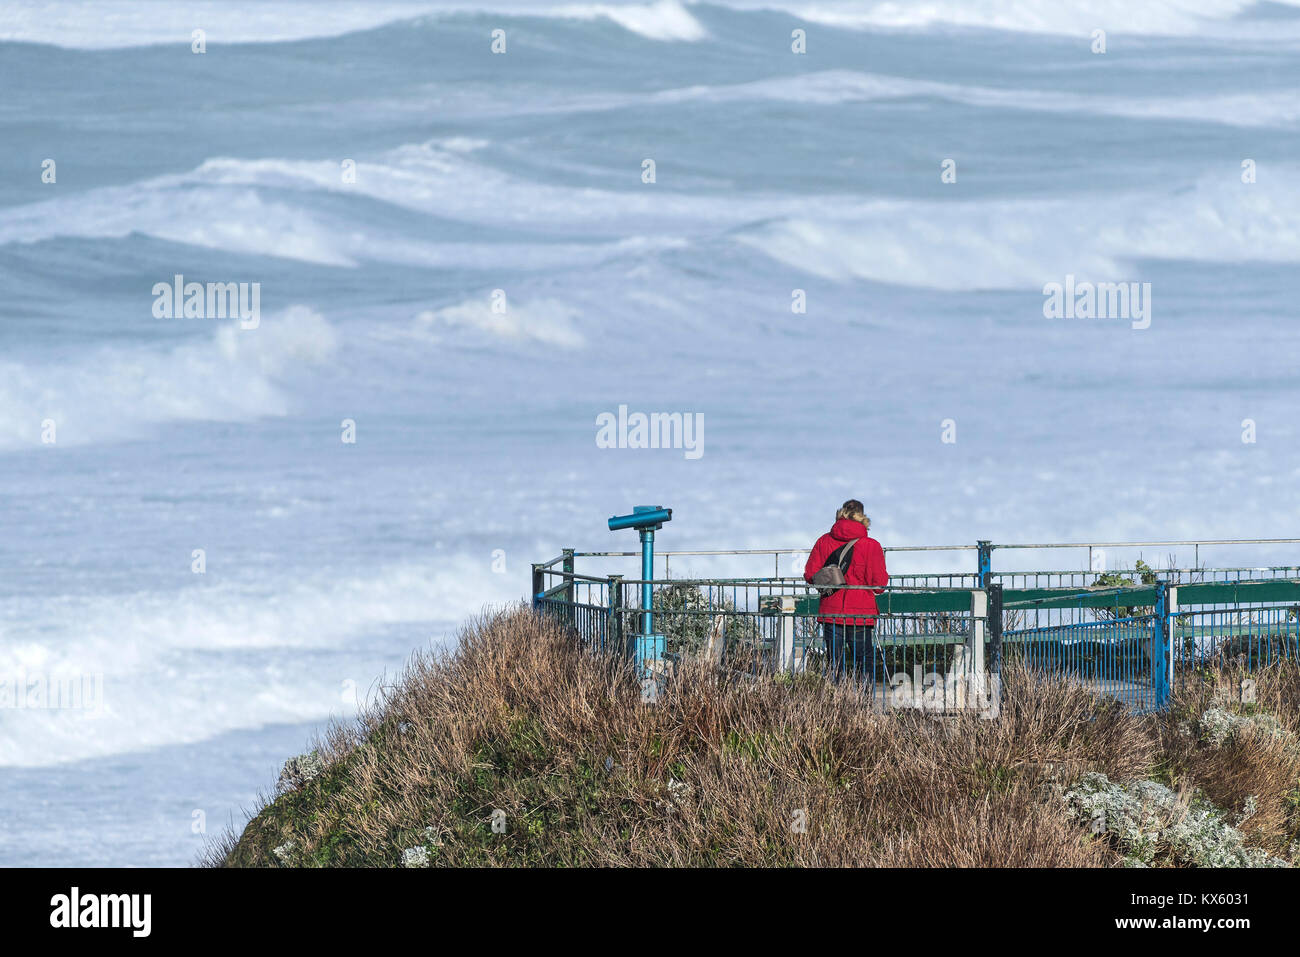 A man wearing a red jacket standing on a viewing platform overlooking the sea in Newquay Cornwall - Stock Image